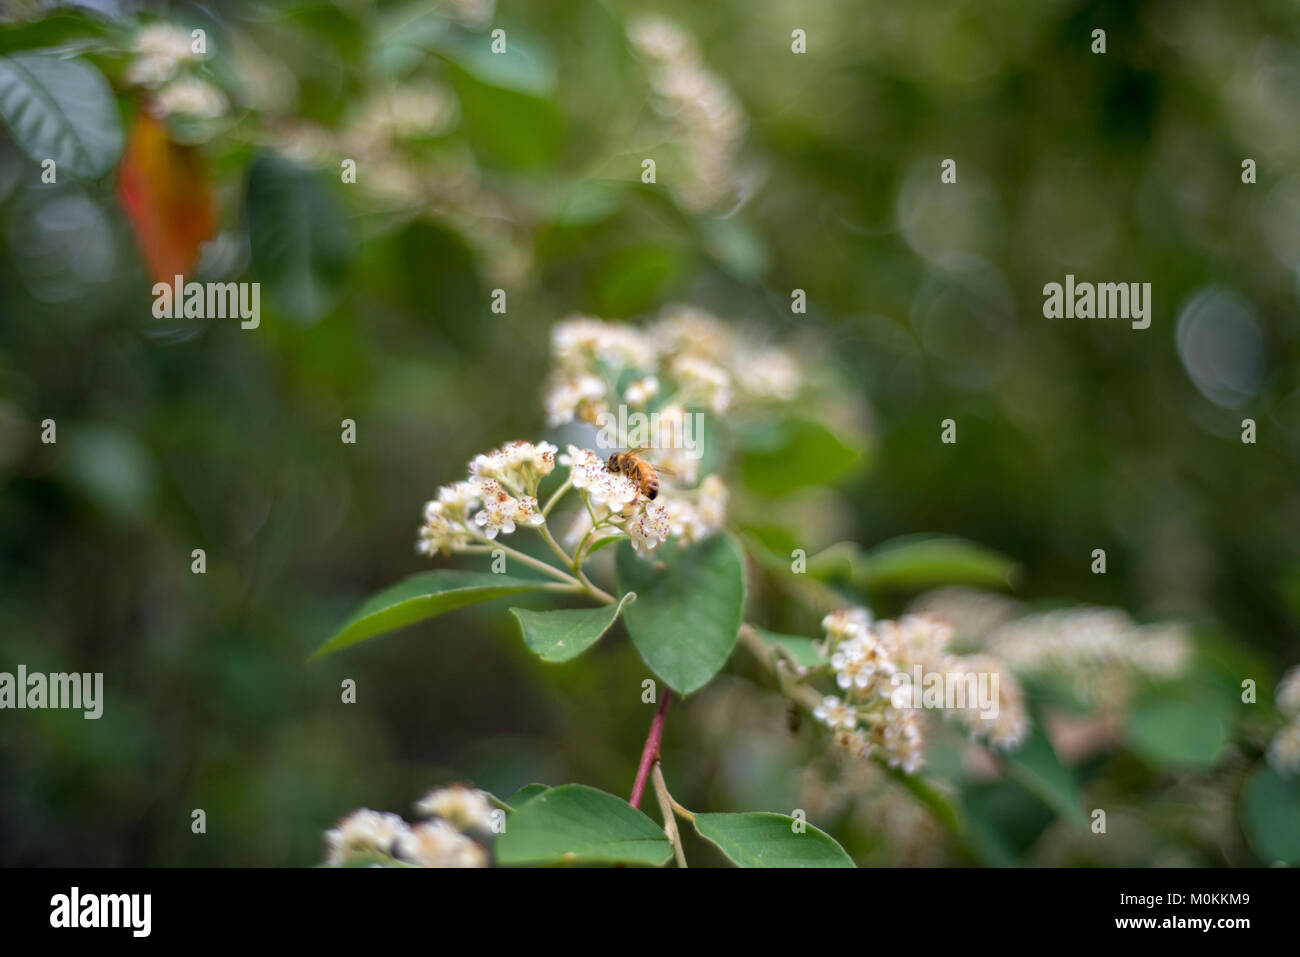 Bee pollinating on small white flowers with blurred background. - Stock Image